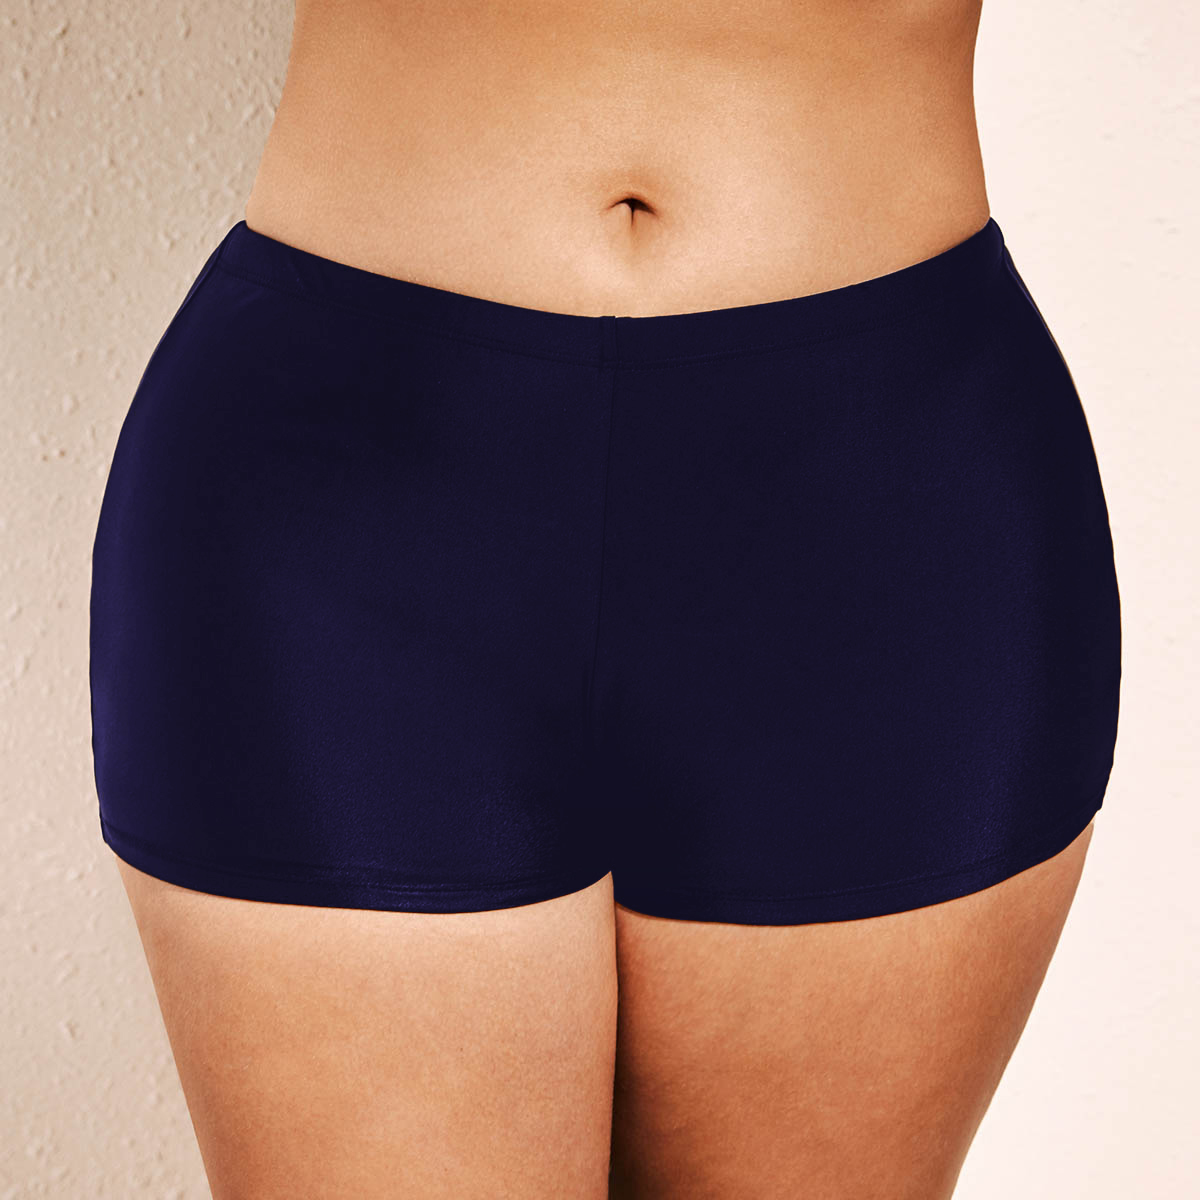 Mid Waist Navy Blue Plus Size Swimwear Shorts